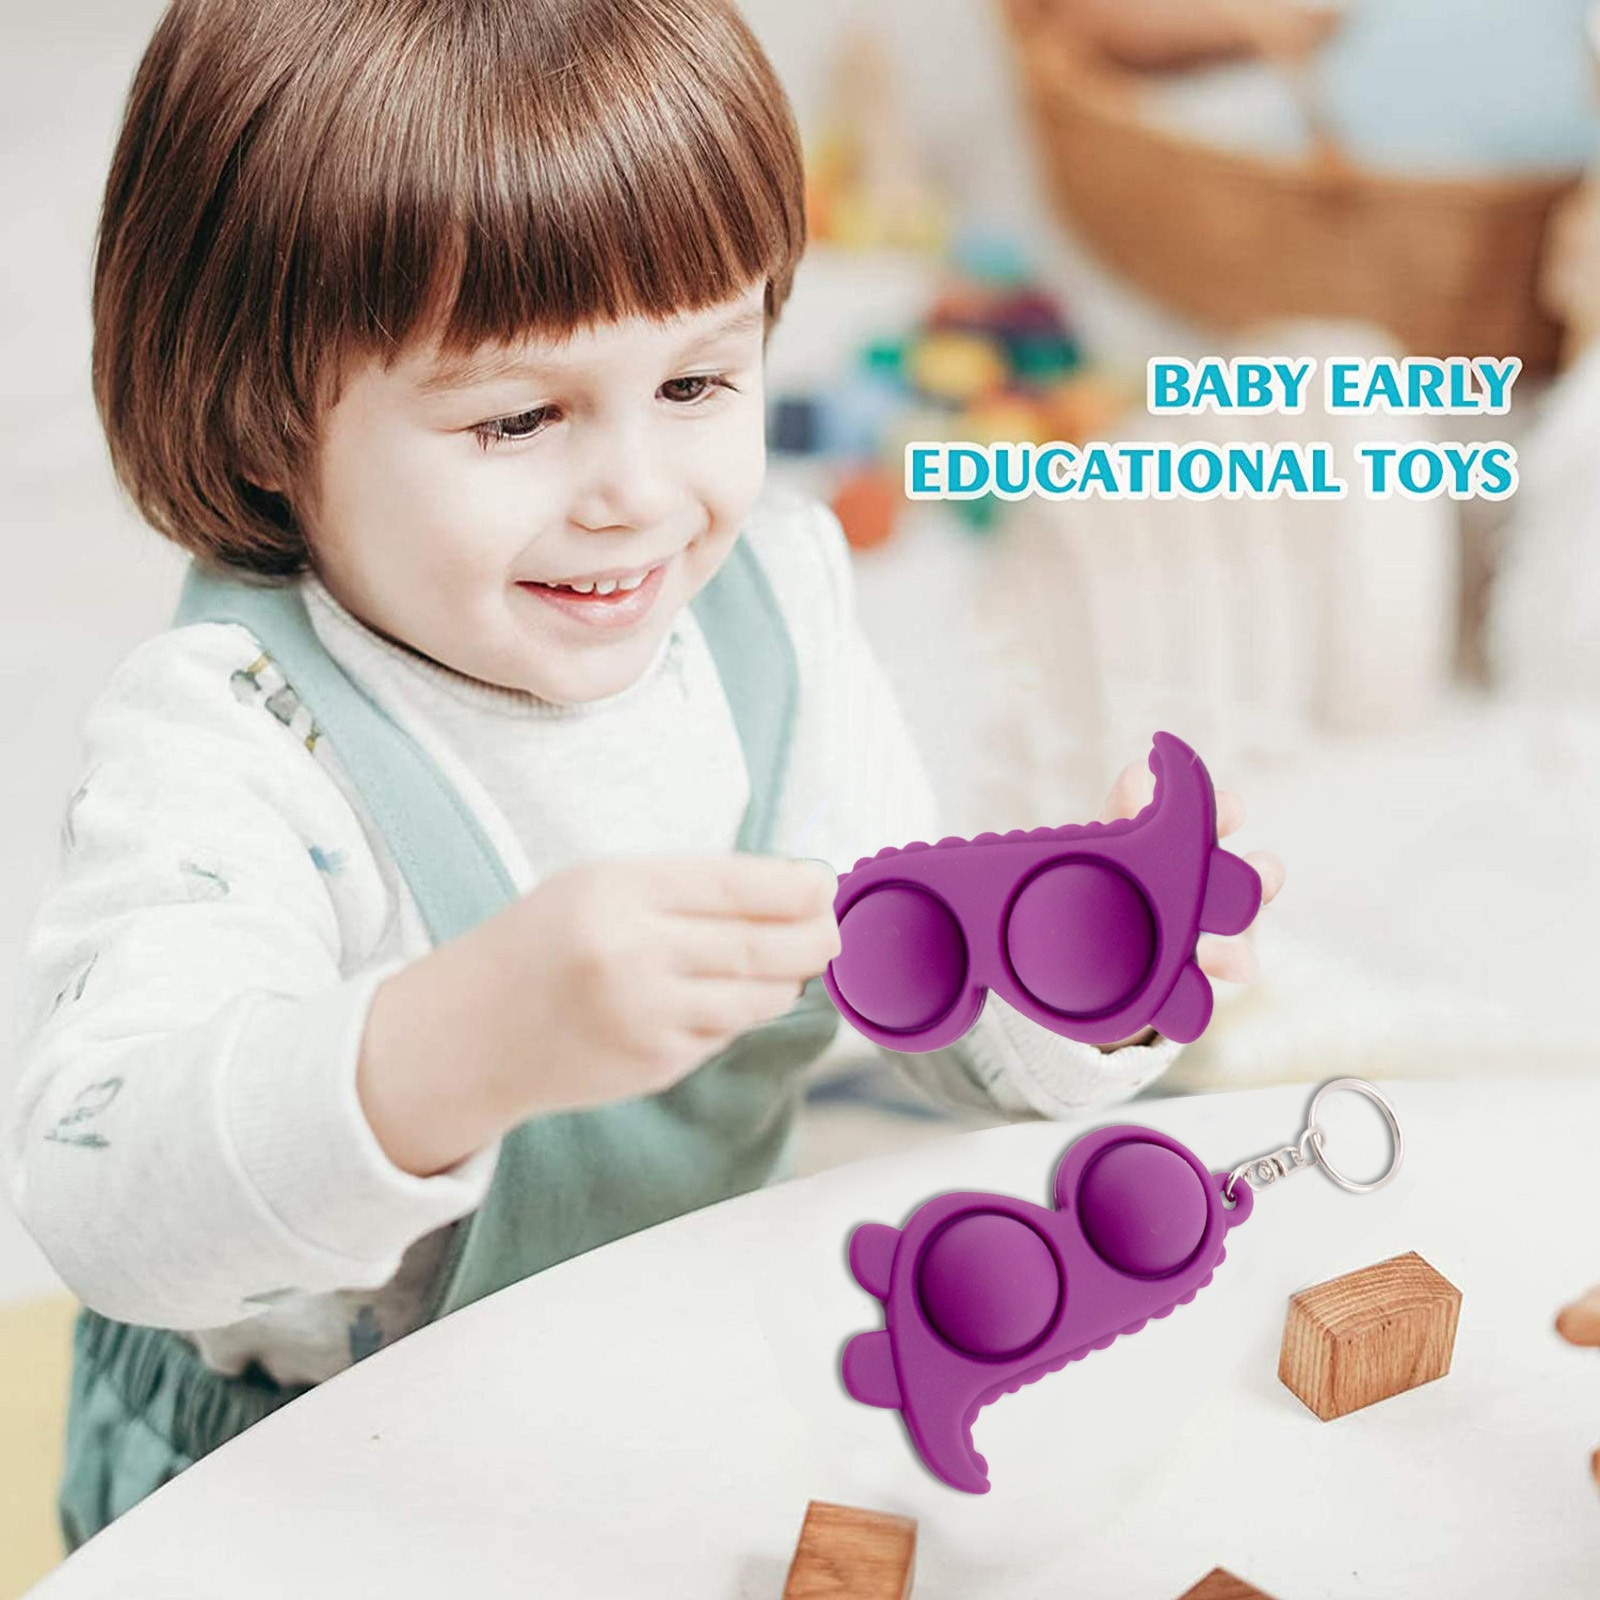 H16633a8b6a0d4c7c9248d74939489d3dg - #AA Simple Dimple Fidget Toys Adult Children Antistress Hand Toys Pressure Reliever Board Controller Reliver Stress Toys